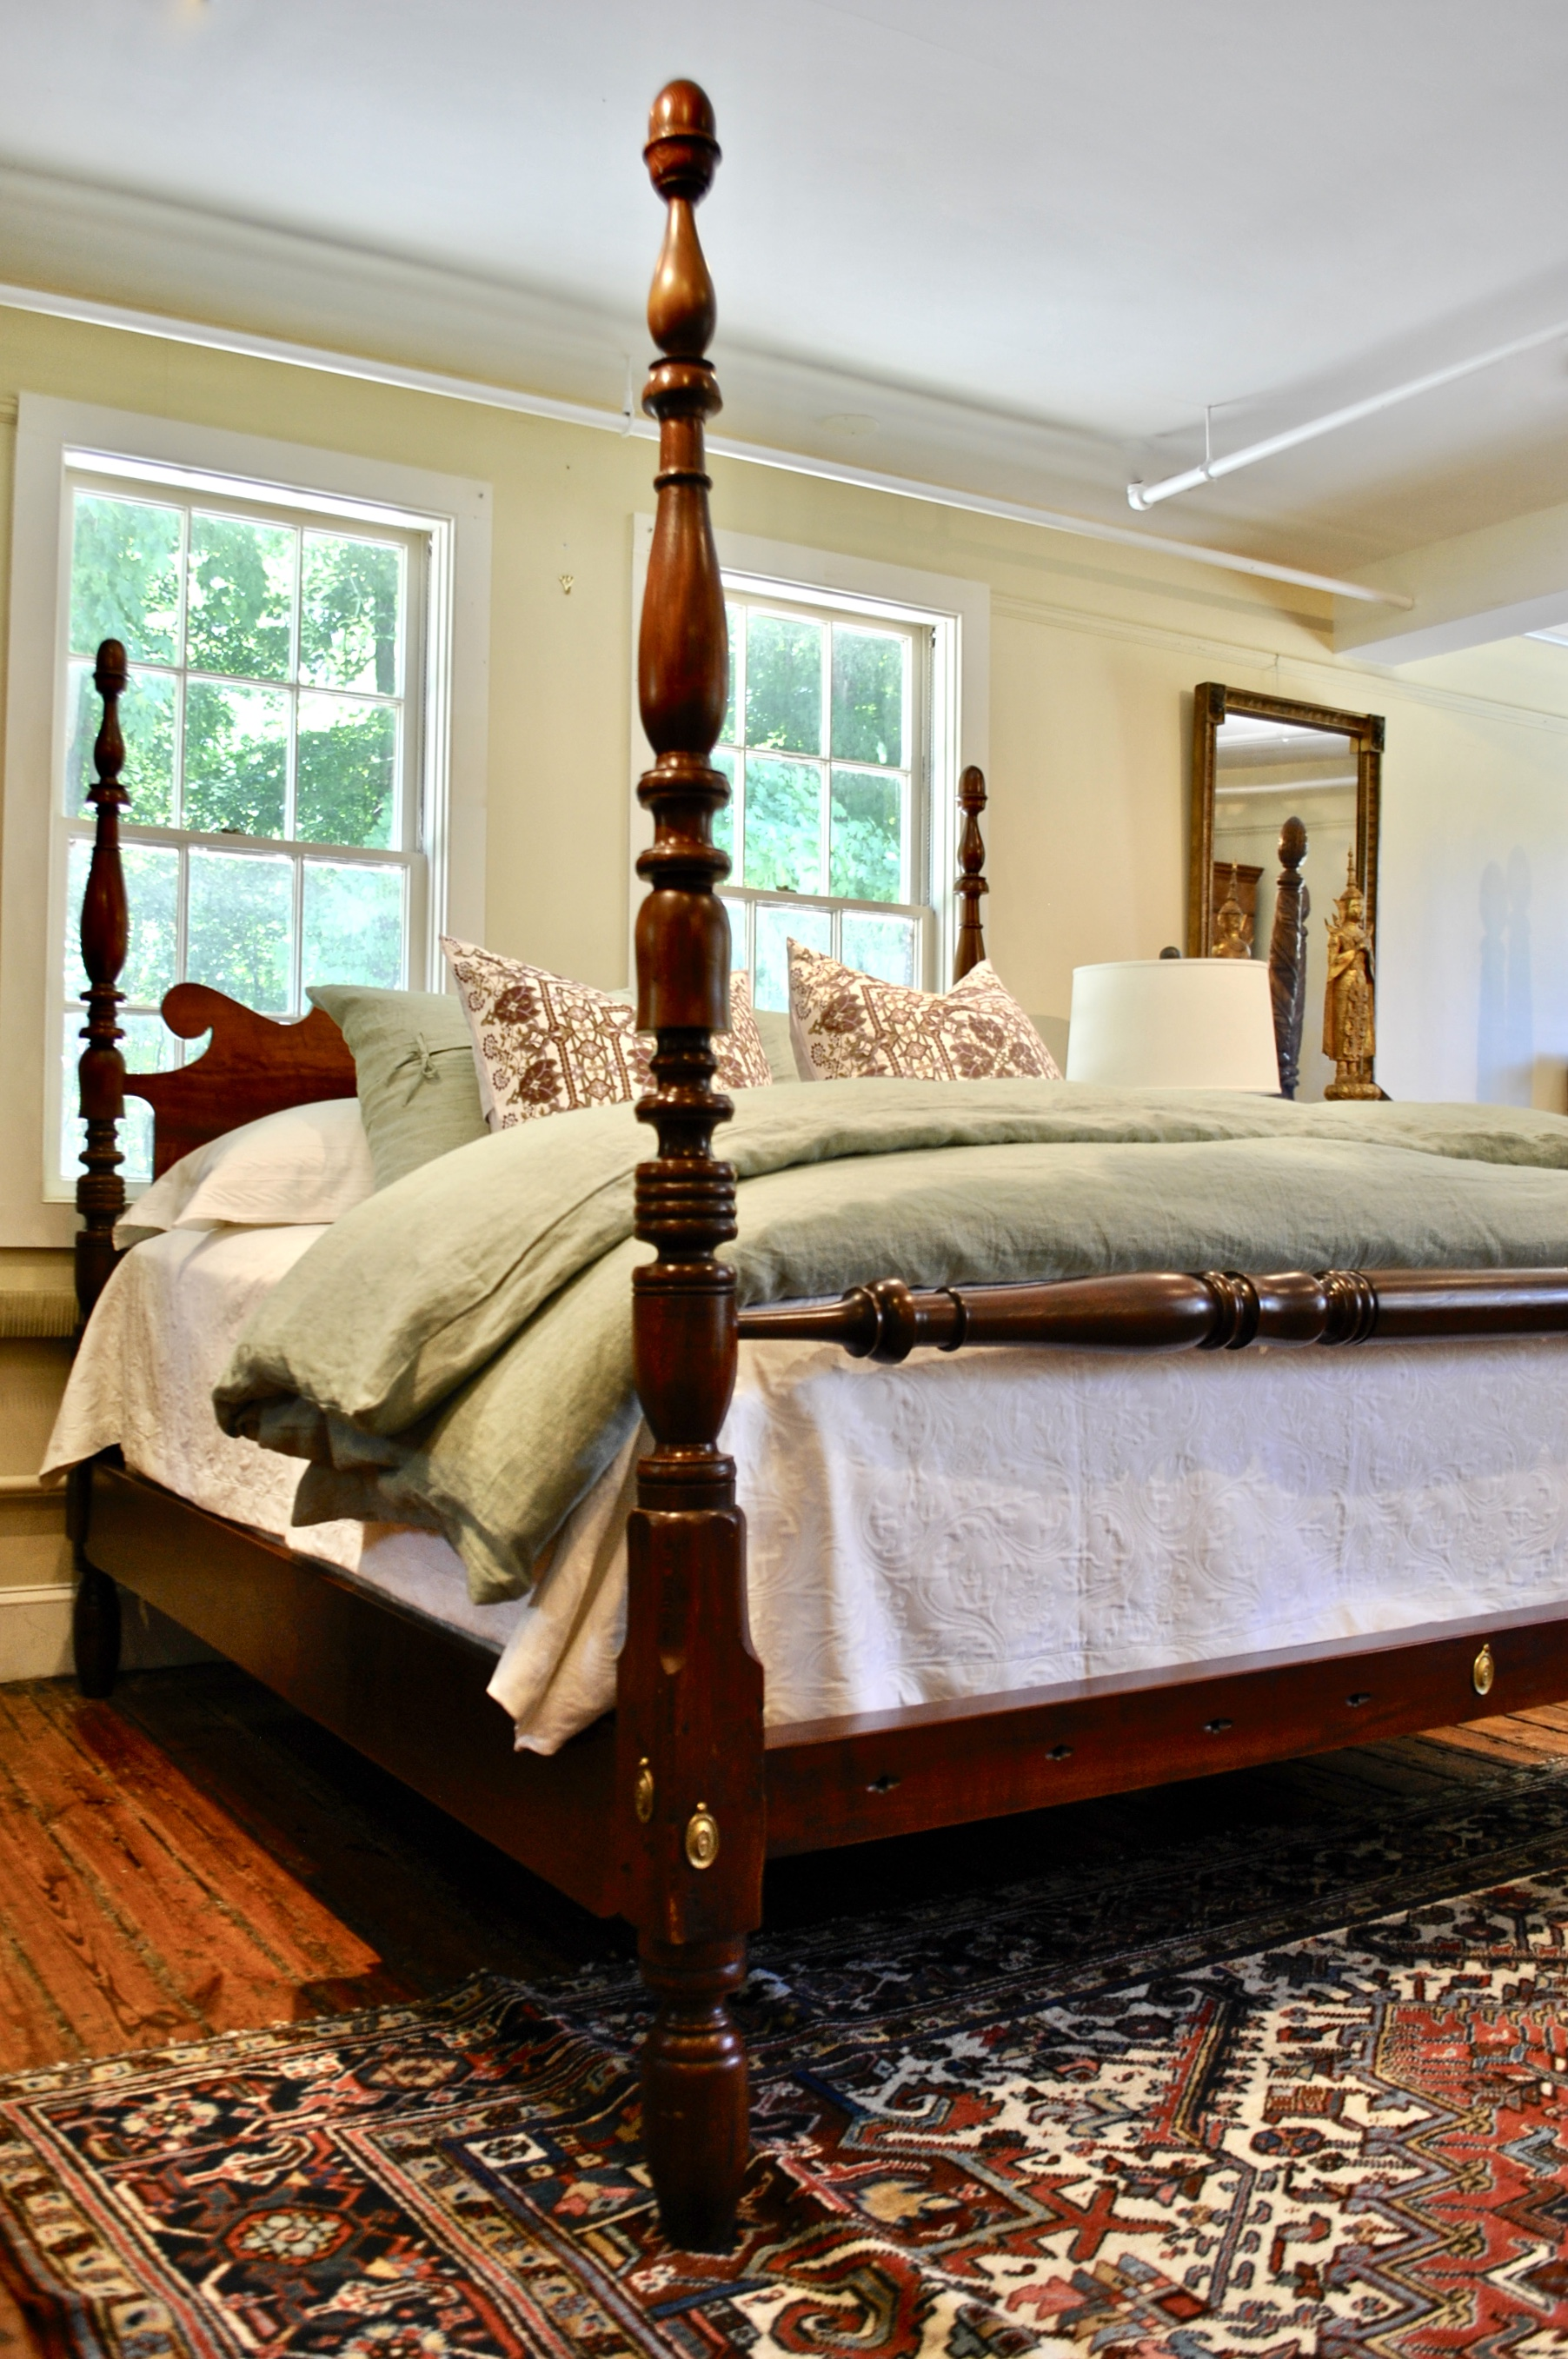 King Bed With Posts Sheraton Tall Post Bed In Maple Original Posts Circa 1820 Resized To King W Ram S Ear Headboard Blanket Rail